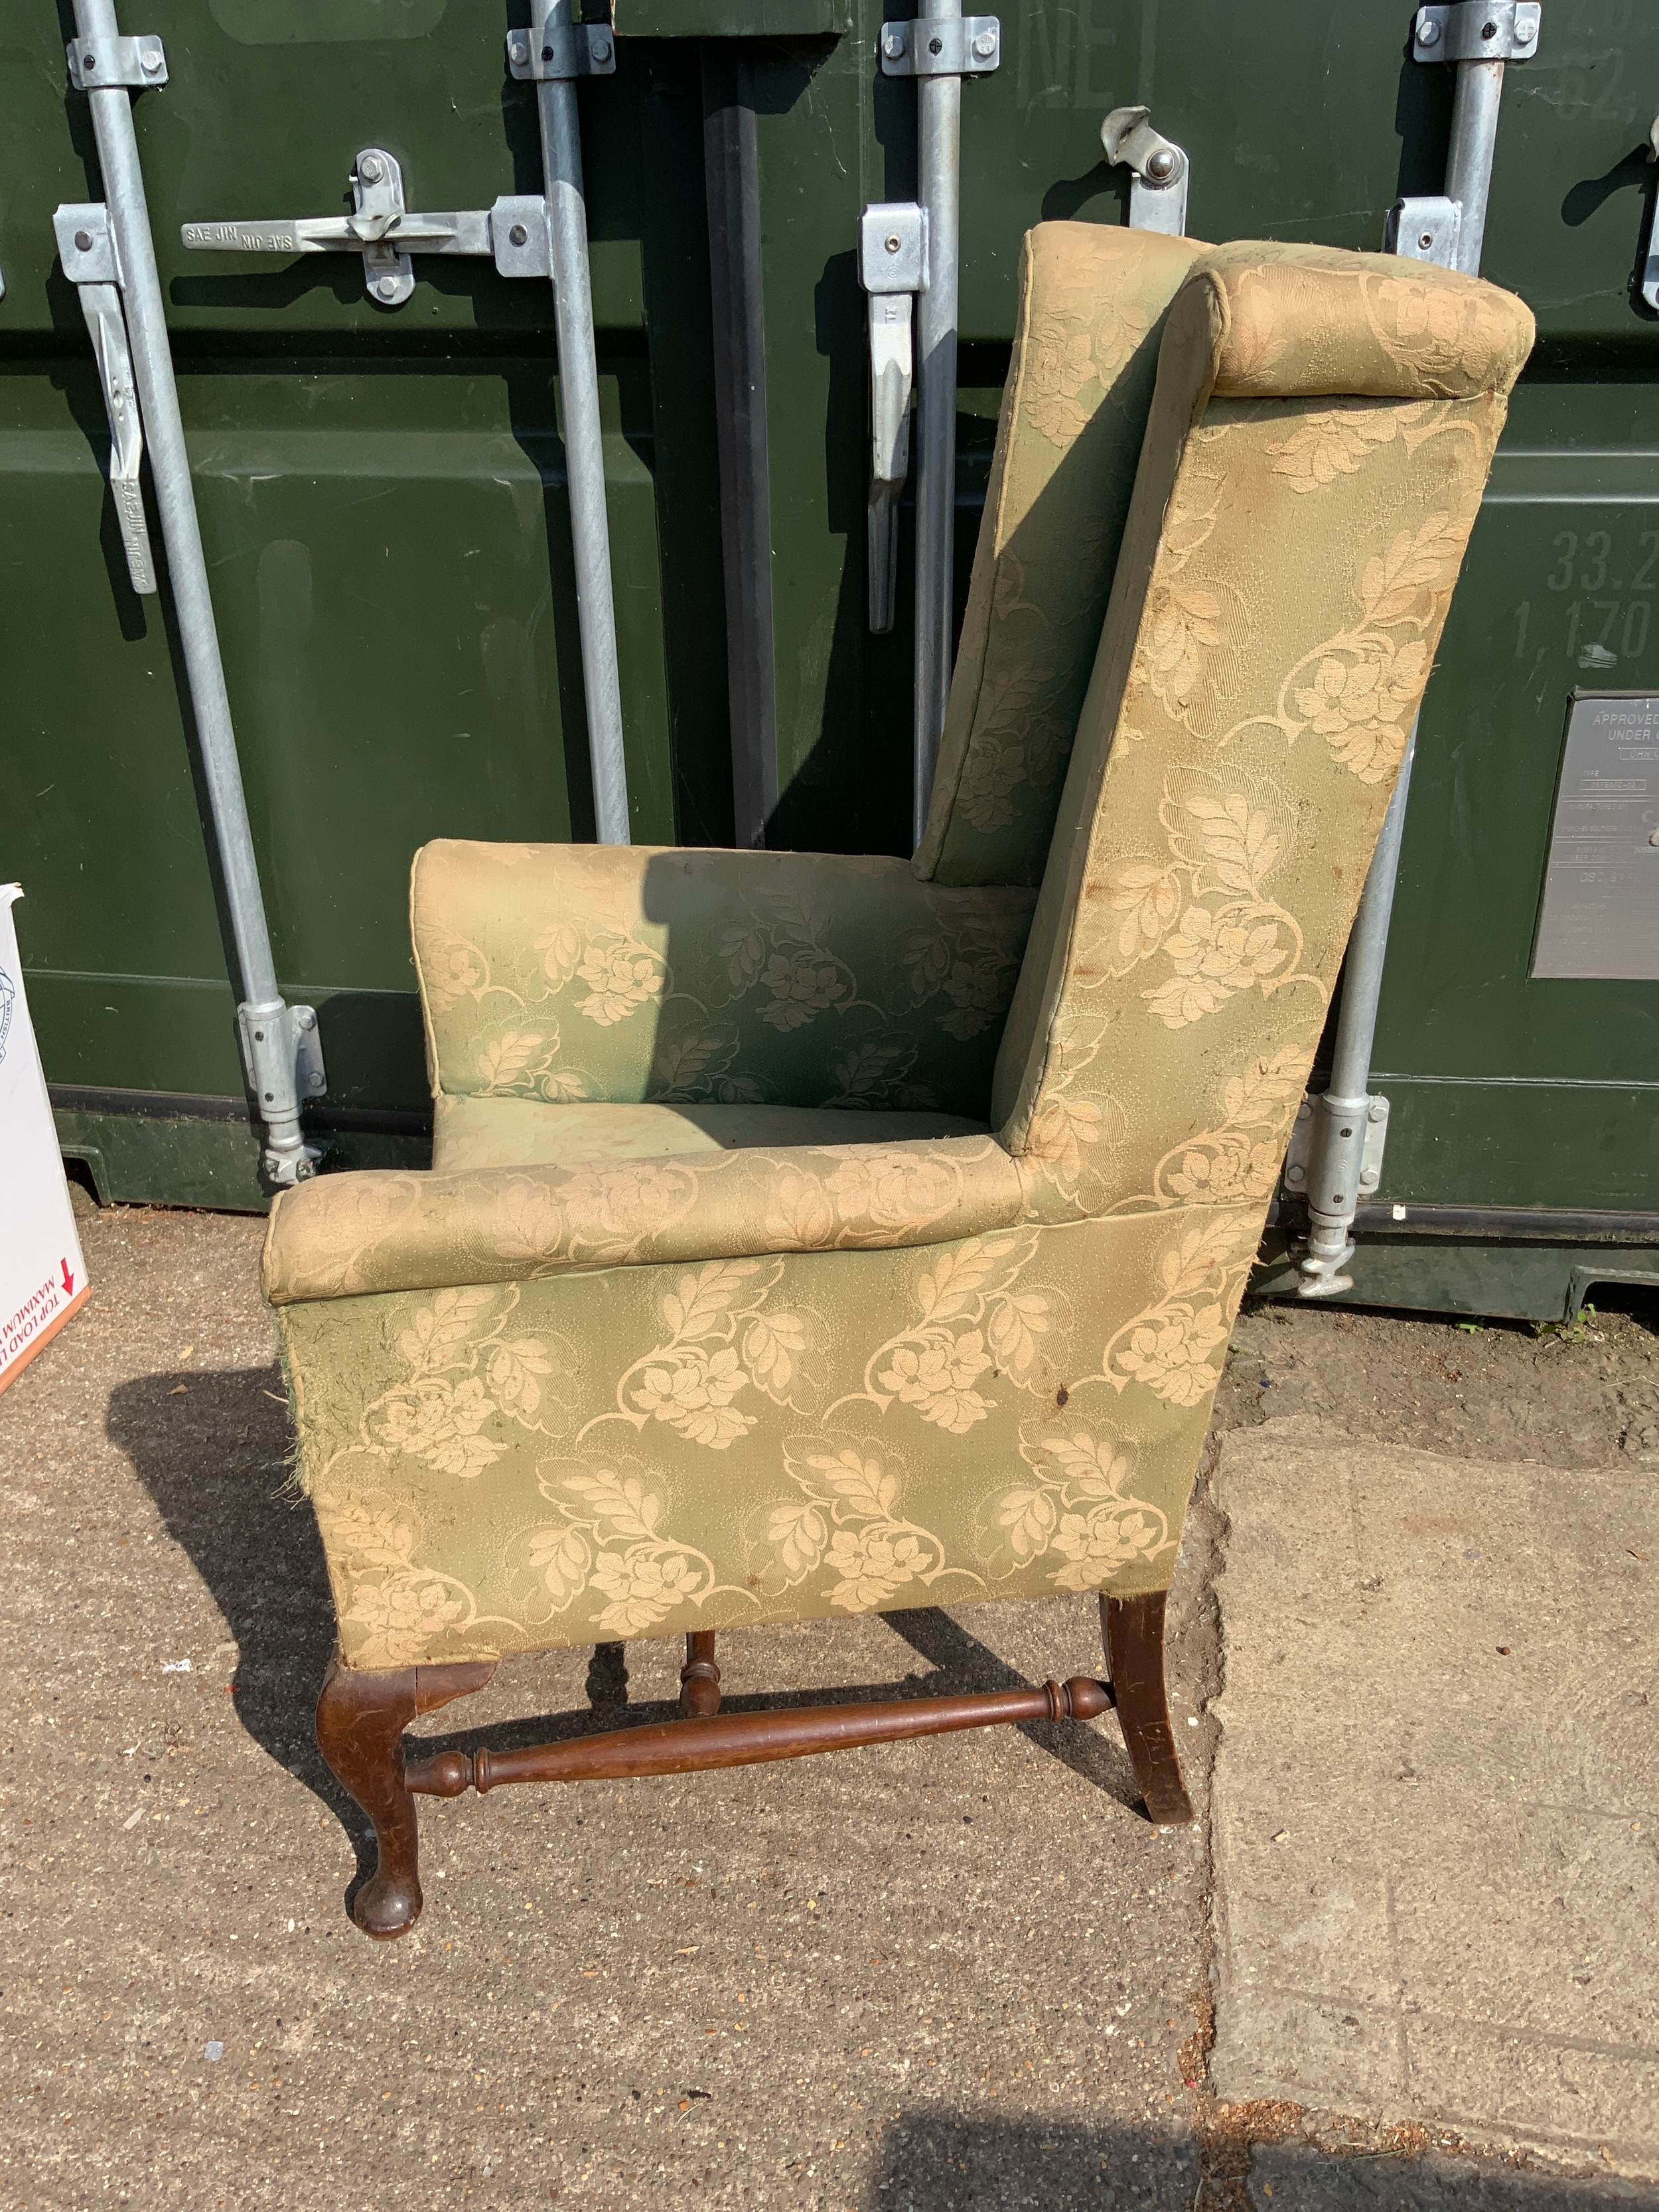 Edwardian High Back Armchair - Image 2 of 3